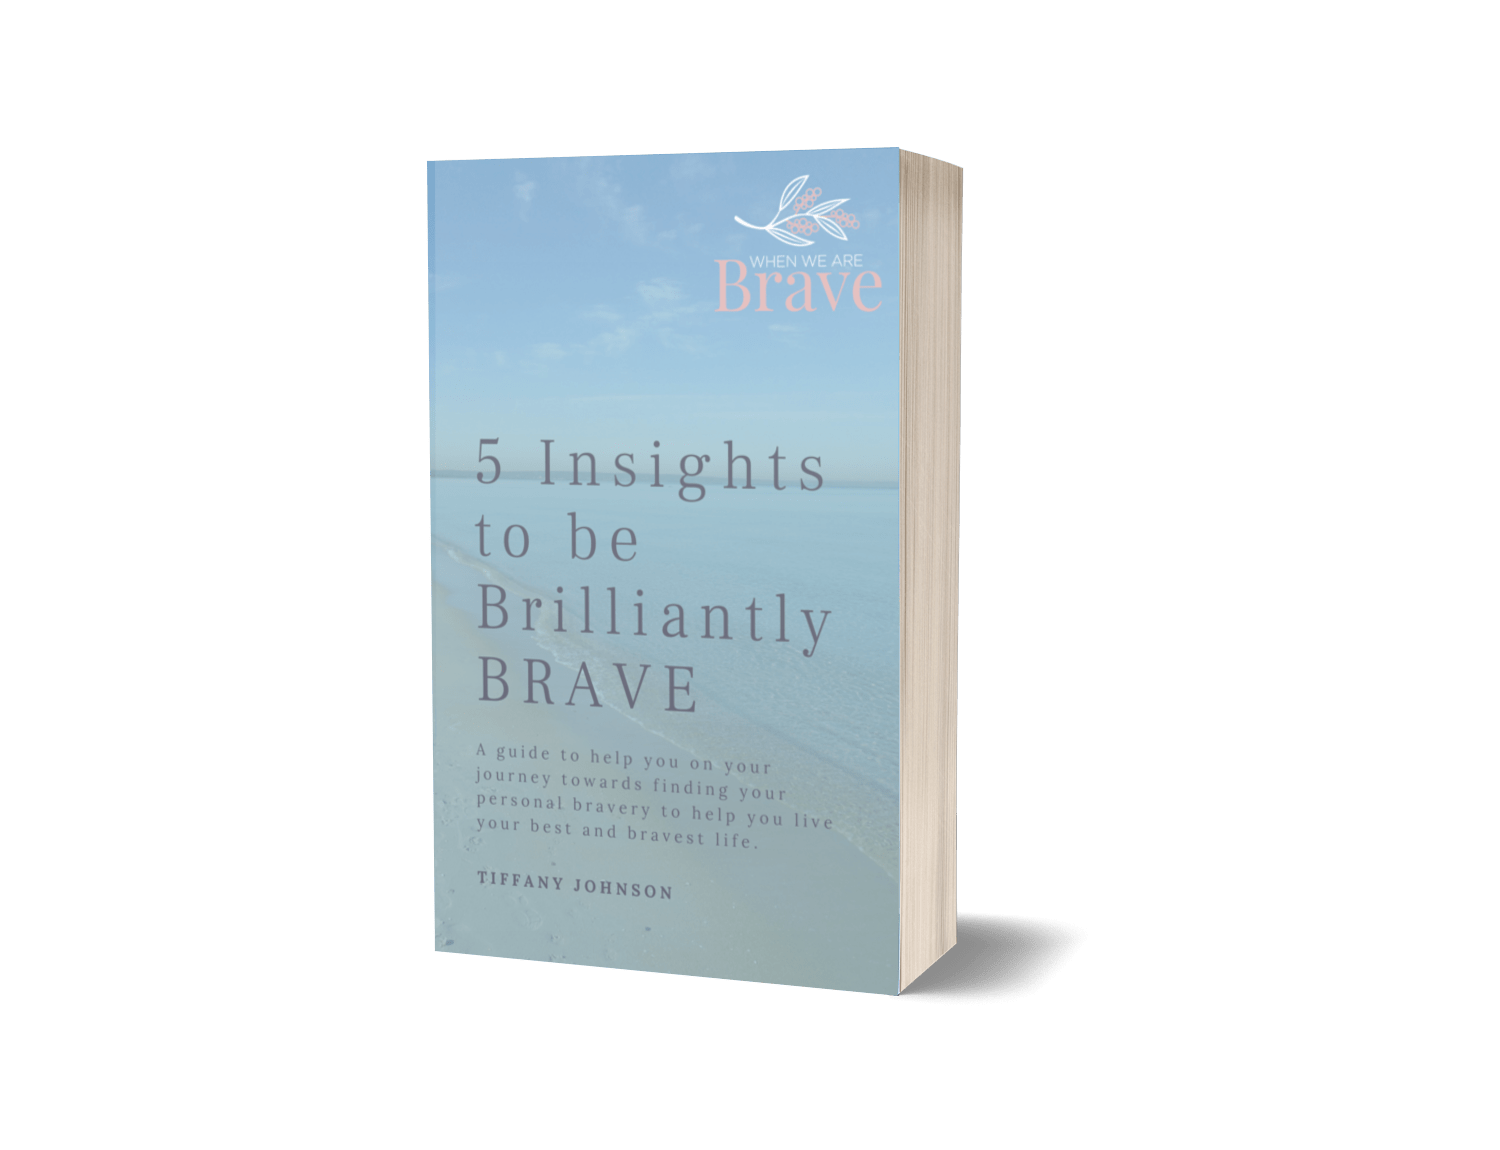 5 Insights to be brilliantly brave FREE ebook by Tiffany Johnson